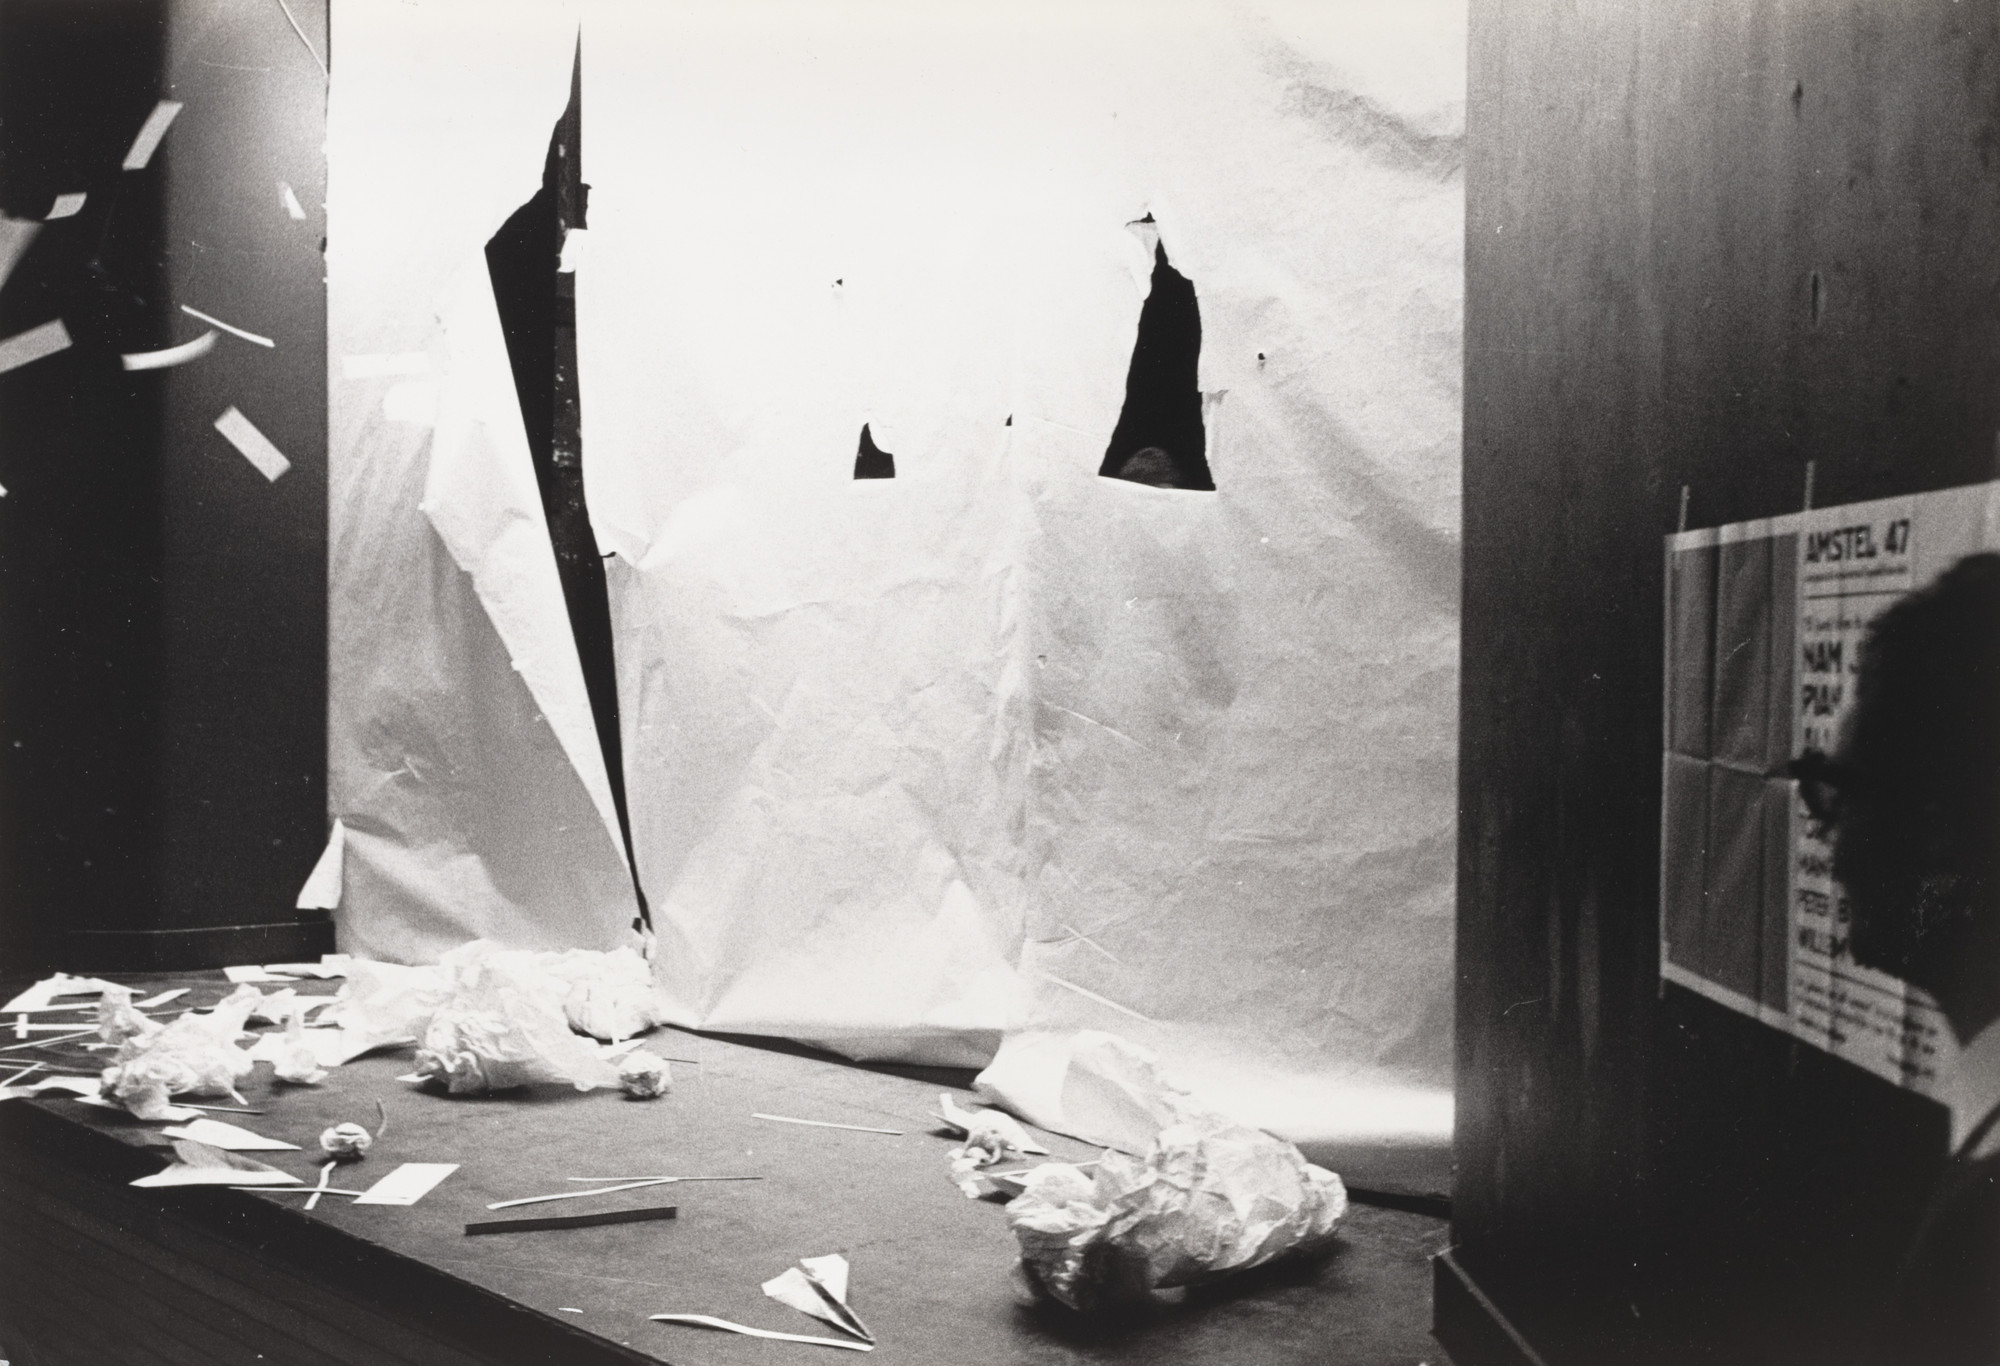 Benjamin Patterson, Oscar van Alphen. Paper Piece (1960), performed during Fluxus Festival/Theatre Compositions/Street Compositions/Exhibits/Electronic Music, Hypokriterion Theater, Amsterdam, June 23, 1963. 1963